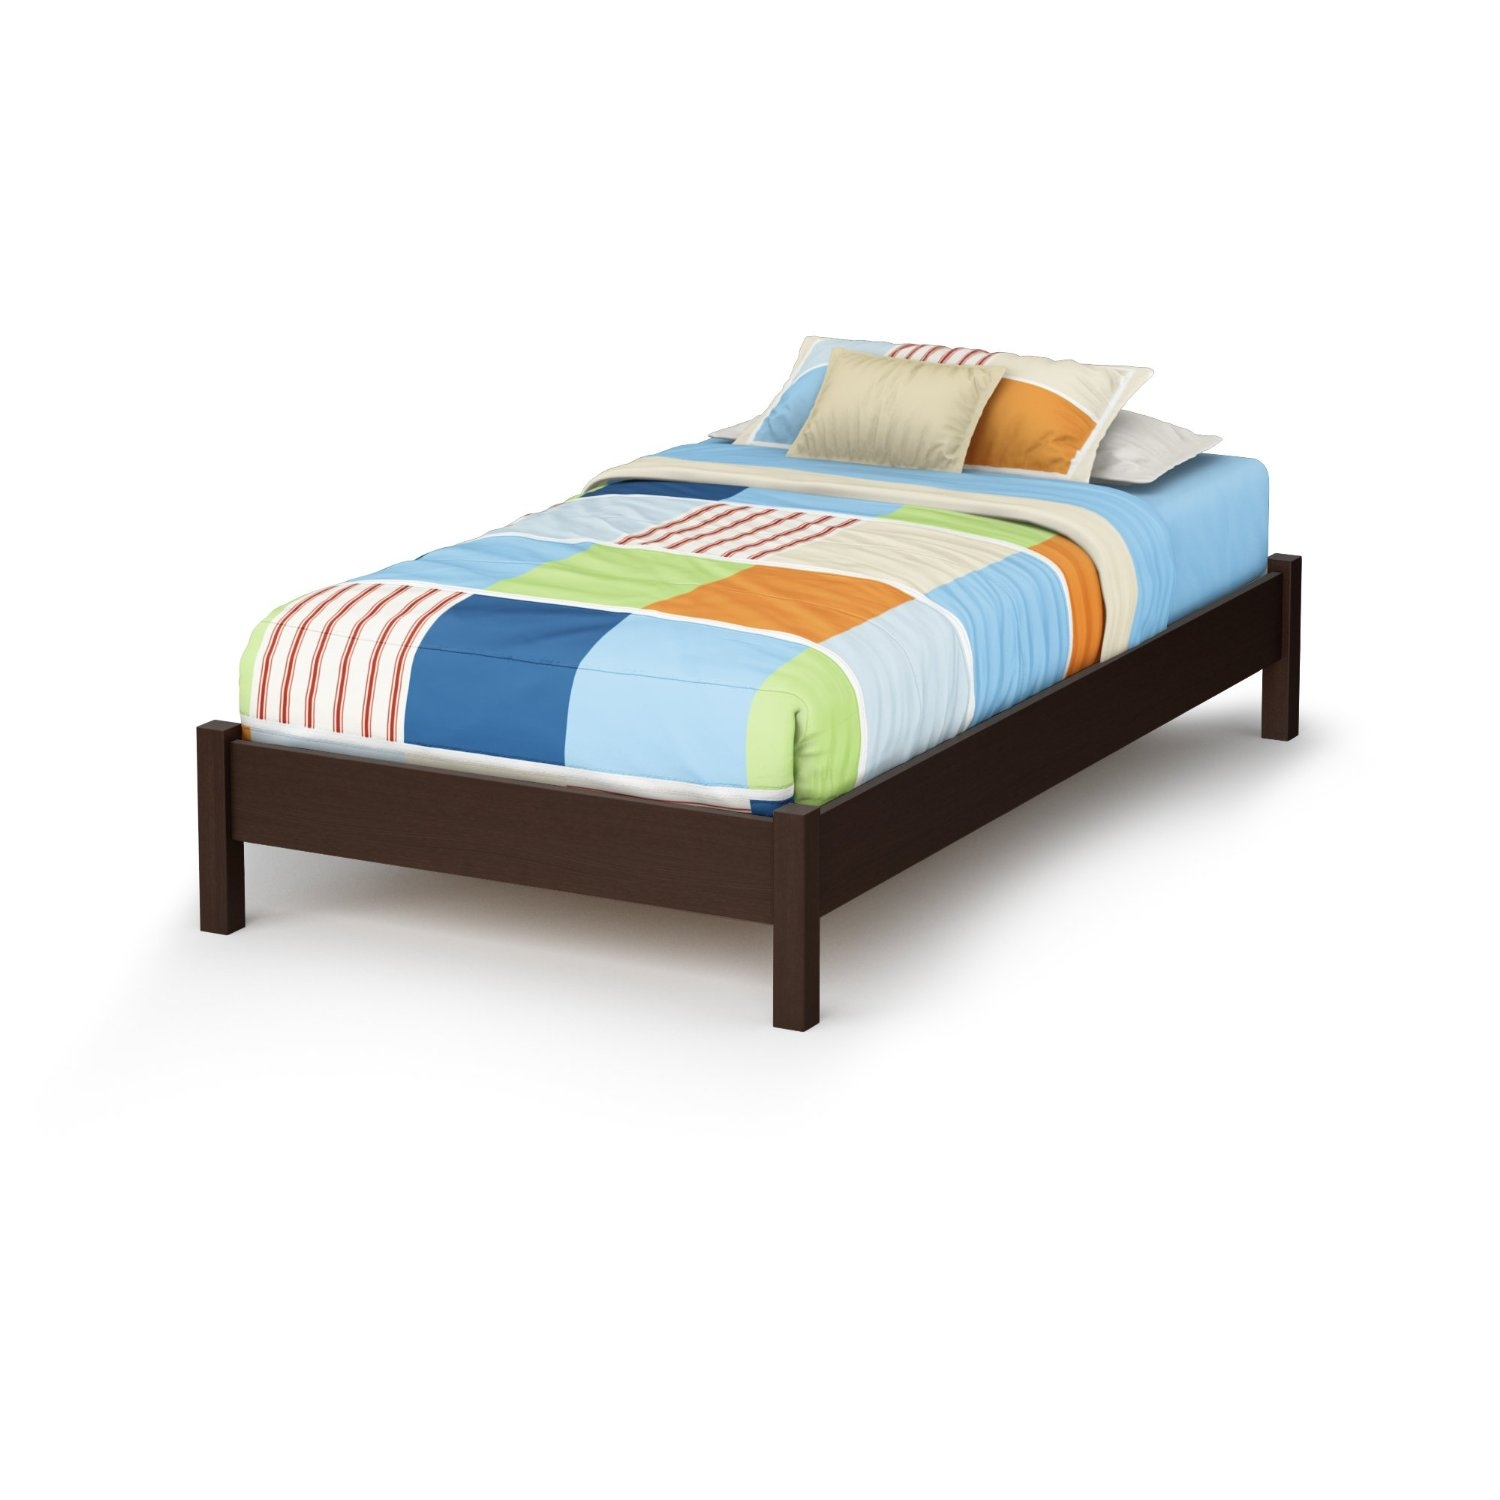 Twin size Modern Platform Bed Frame in Chocolate Brown Finish ...